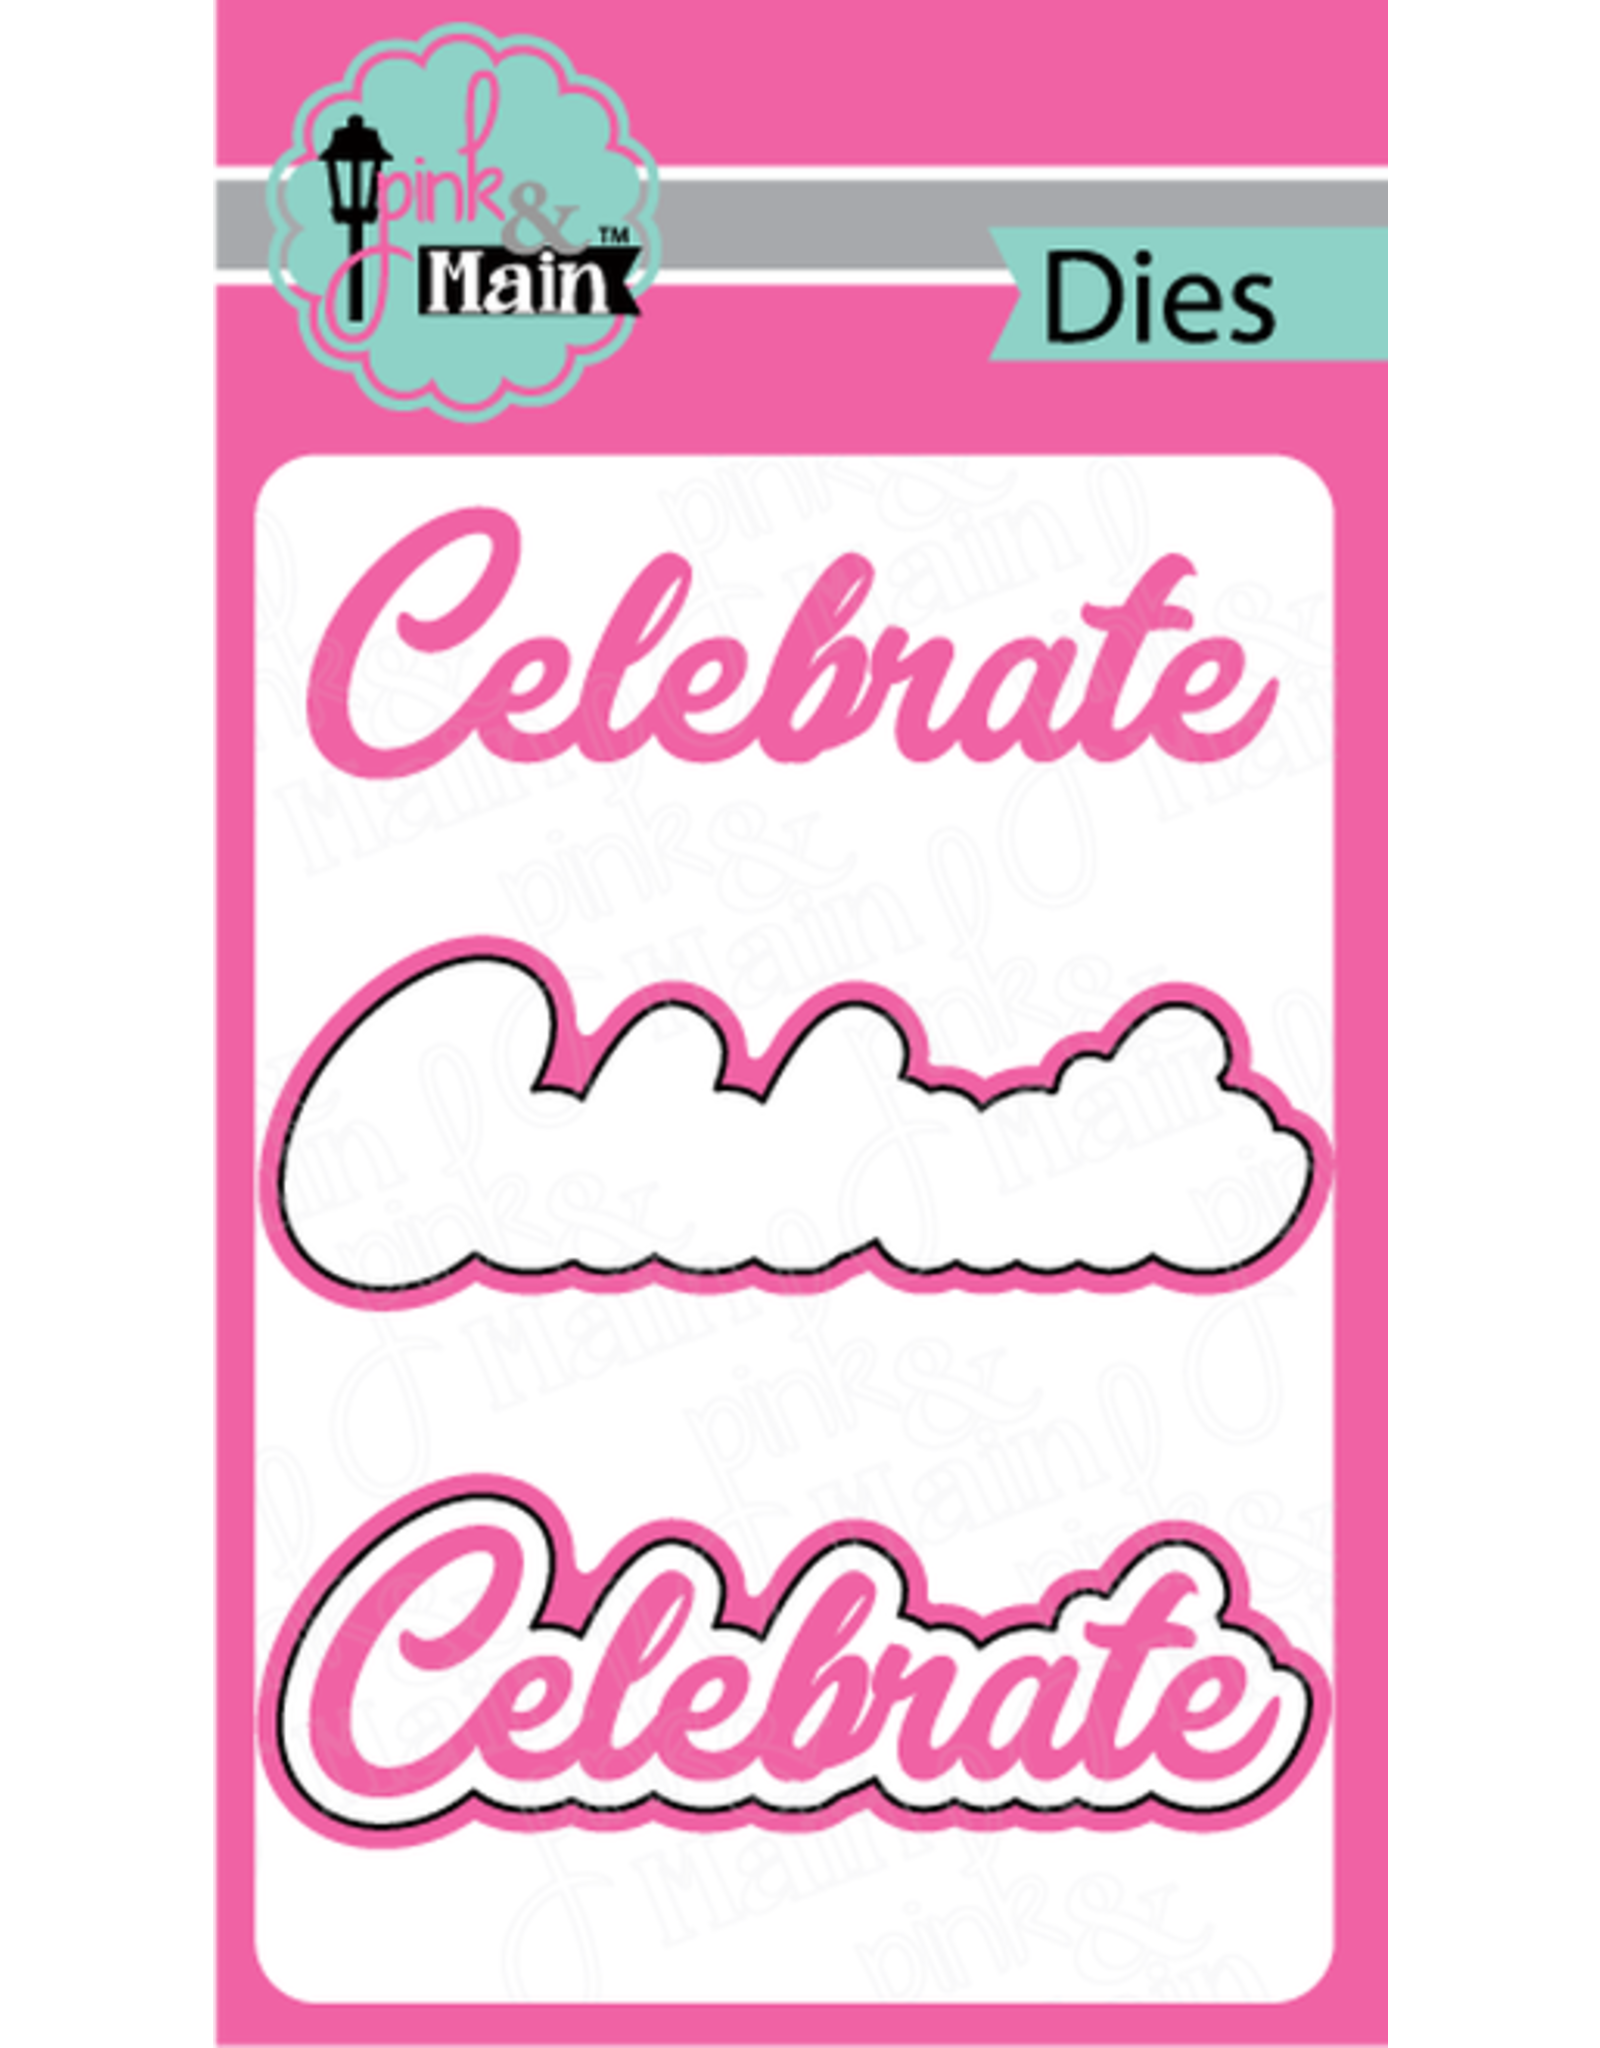 Pink and Main Celebrate - Clear Stamp Set